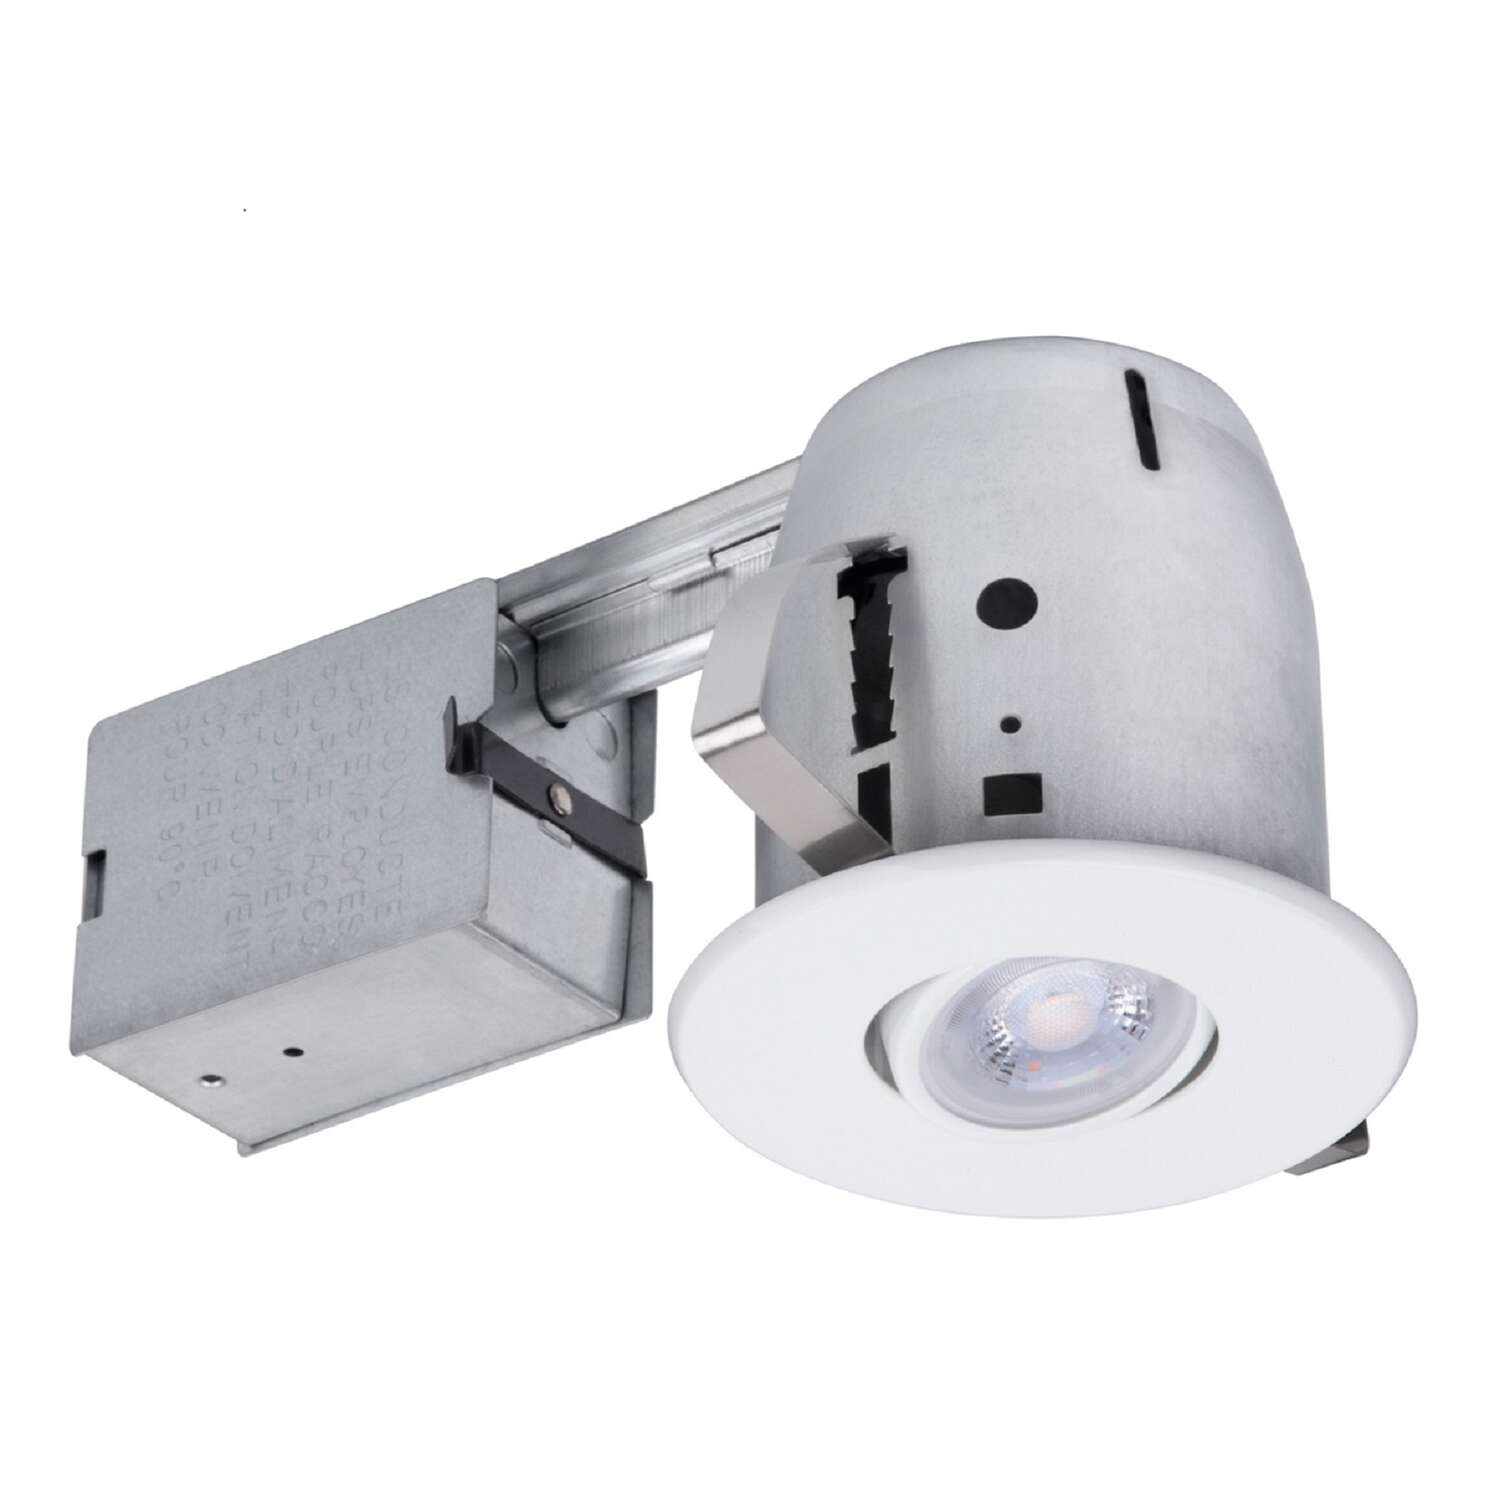 Globe Electric  LED Recessed Lighting Kit  White  4 in. W Metal  LED  Recessed Downlight  50 watt